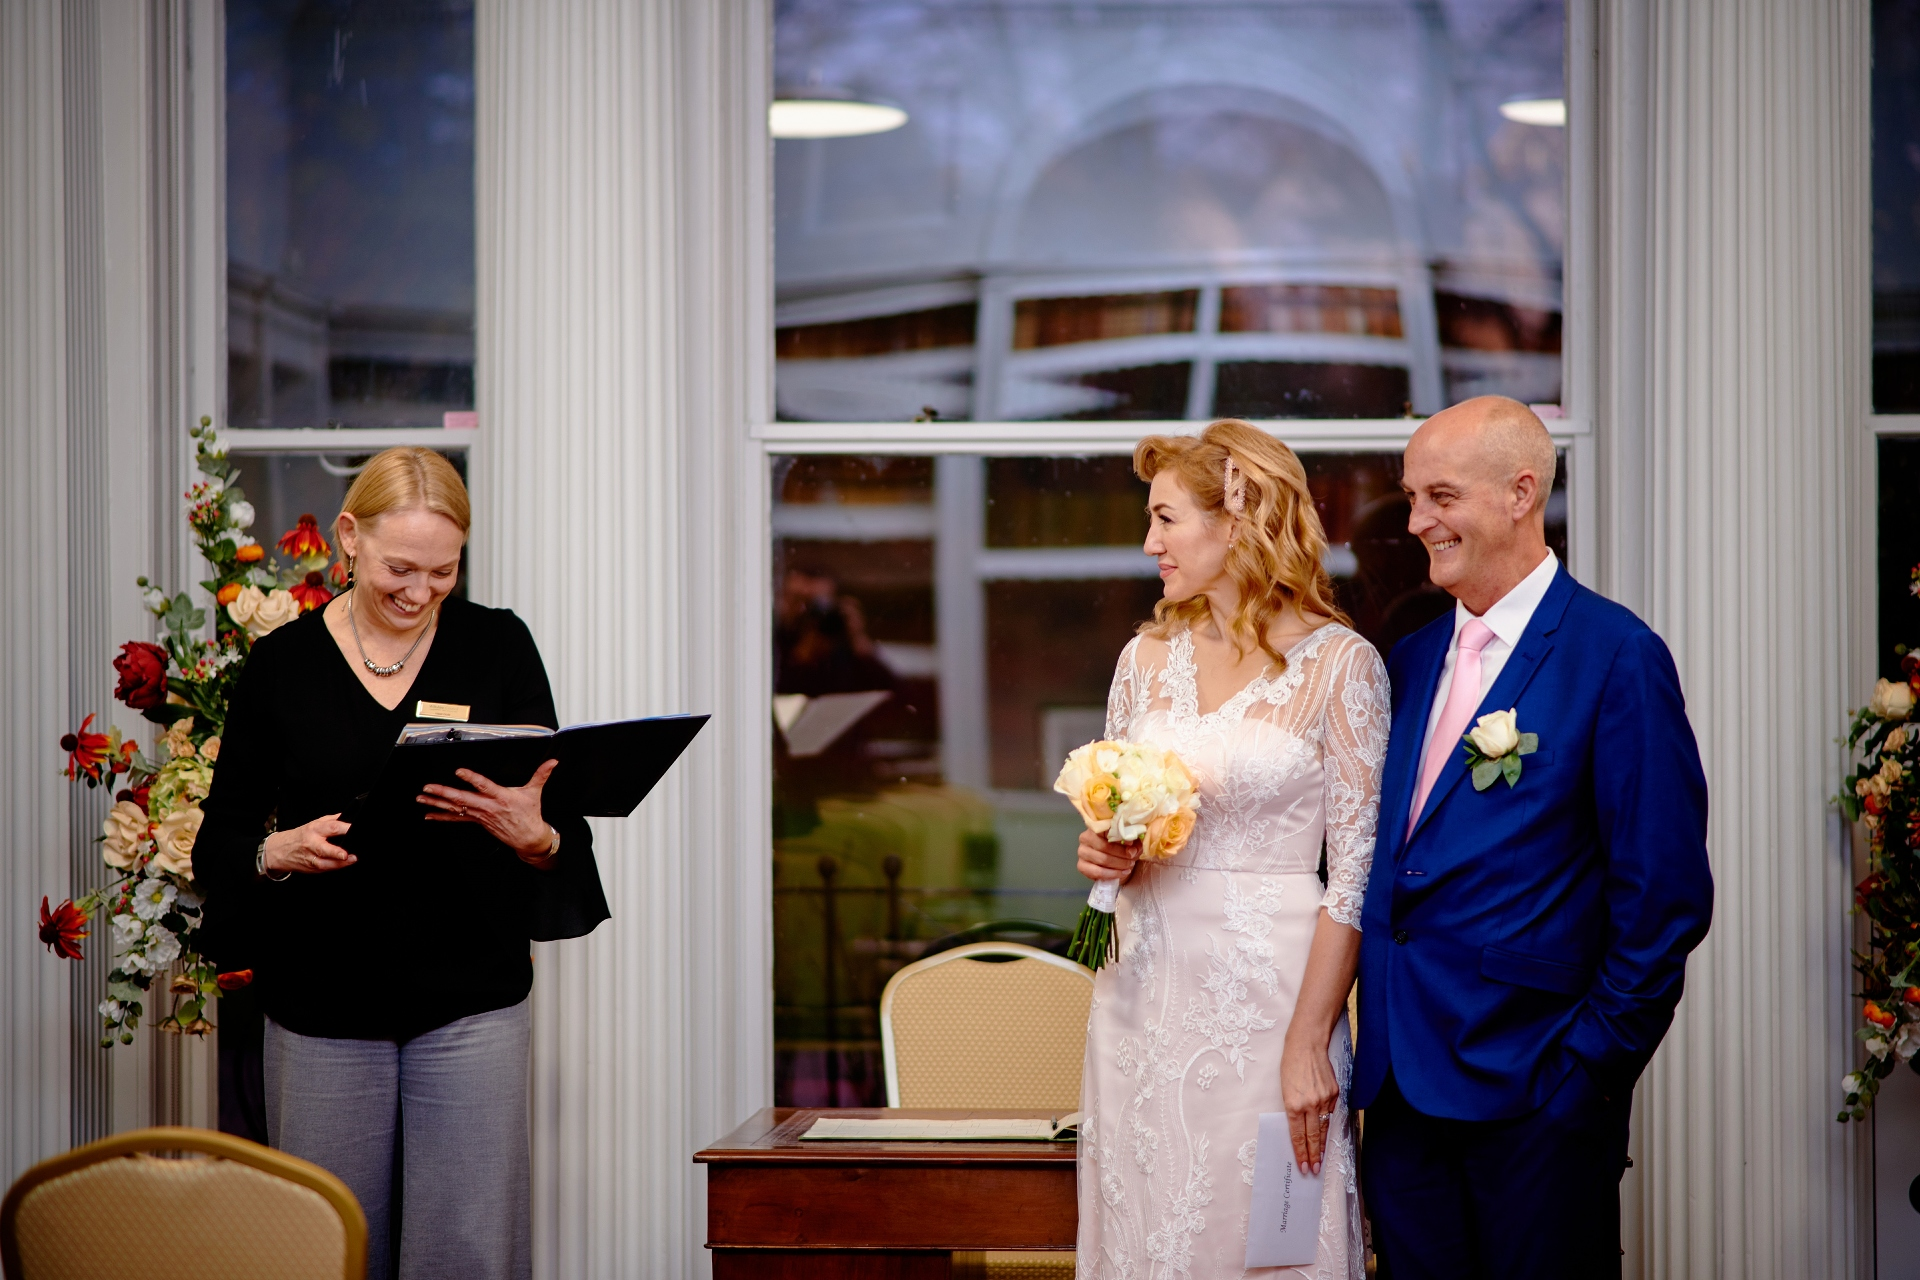 Salisbury, England, United Kingdom Photography | Please stand up and welcome the new couple